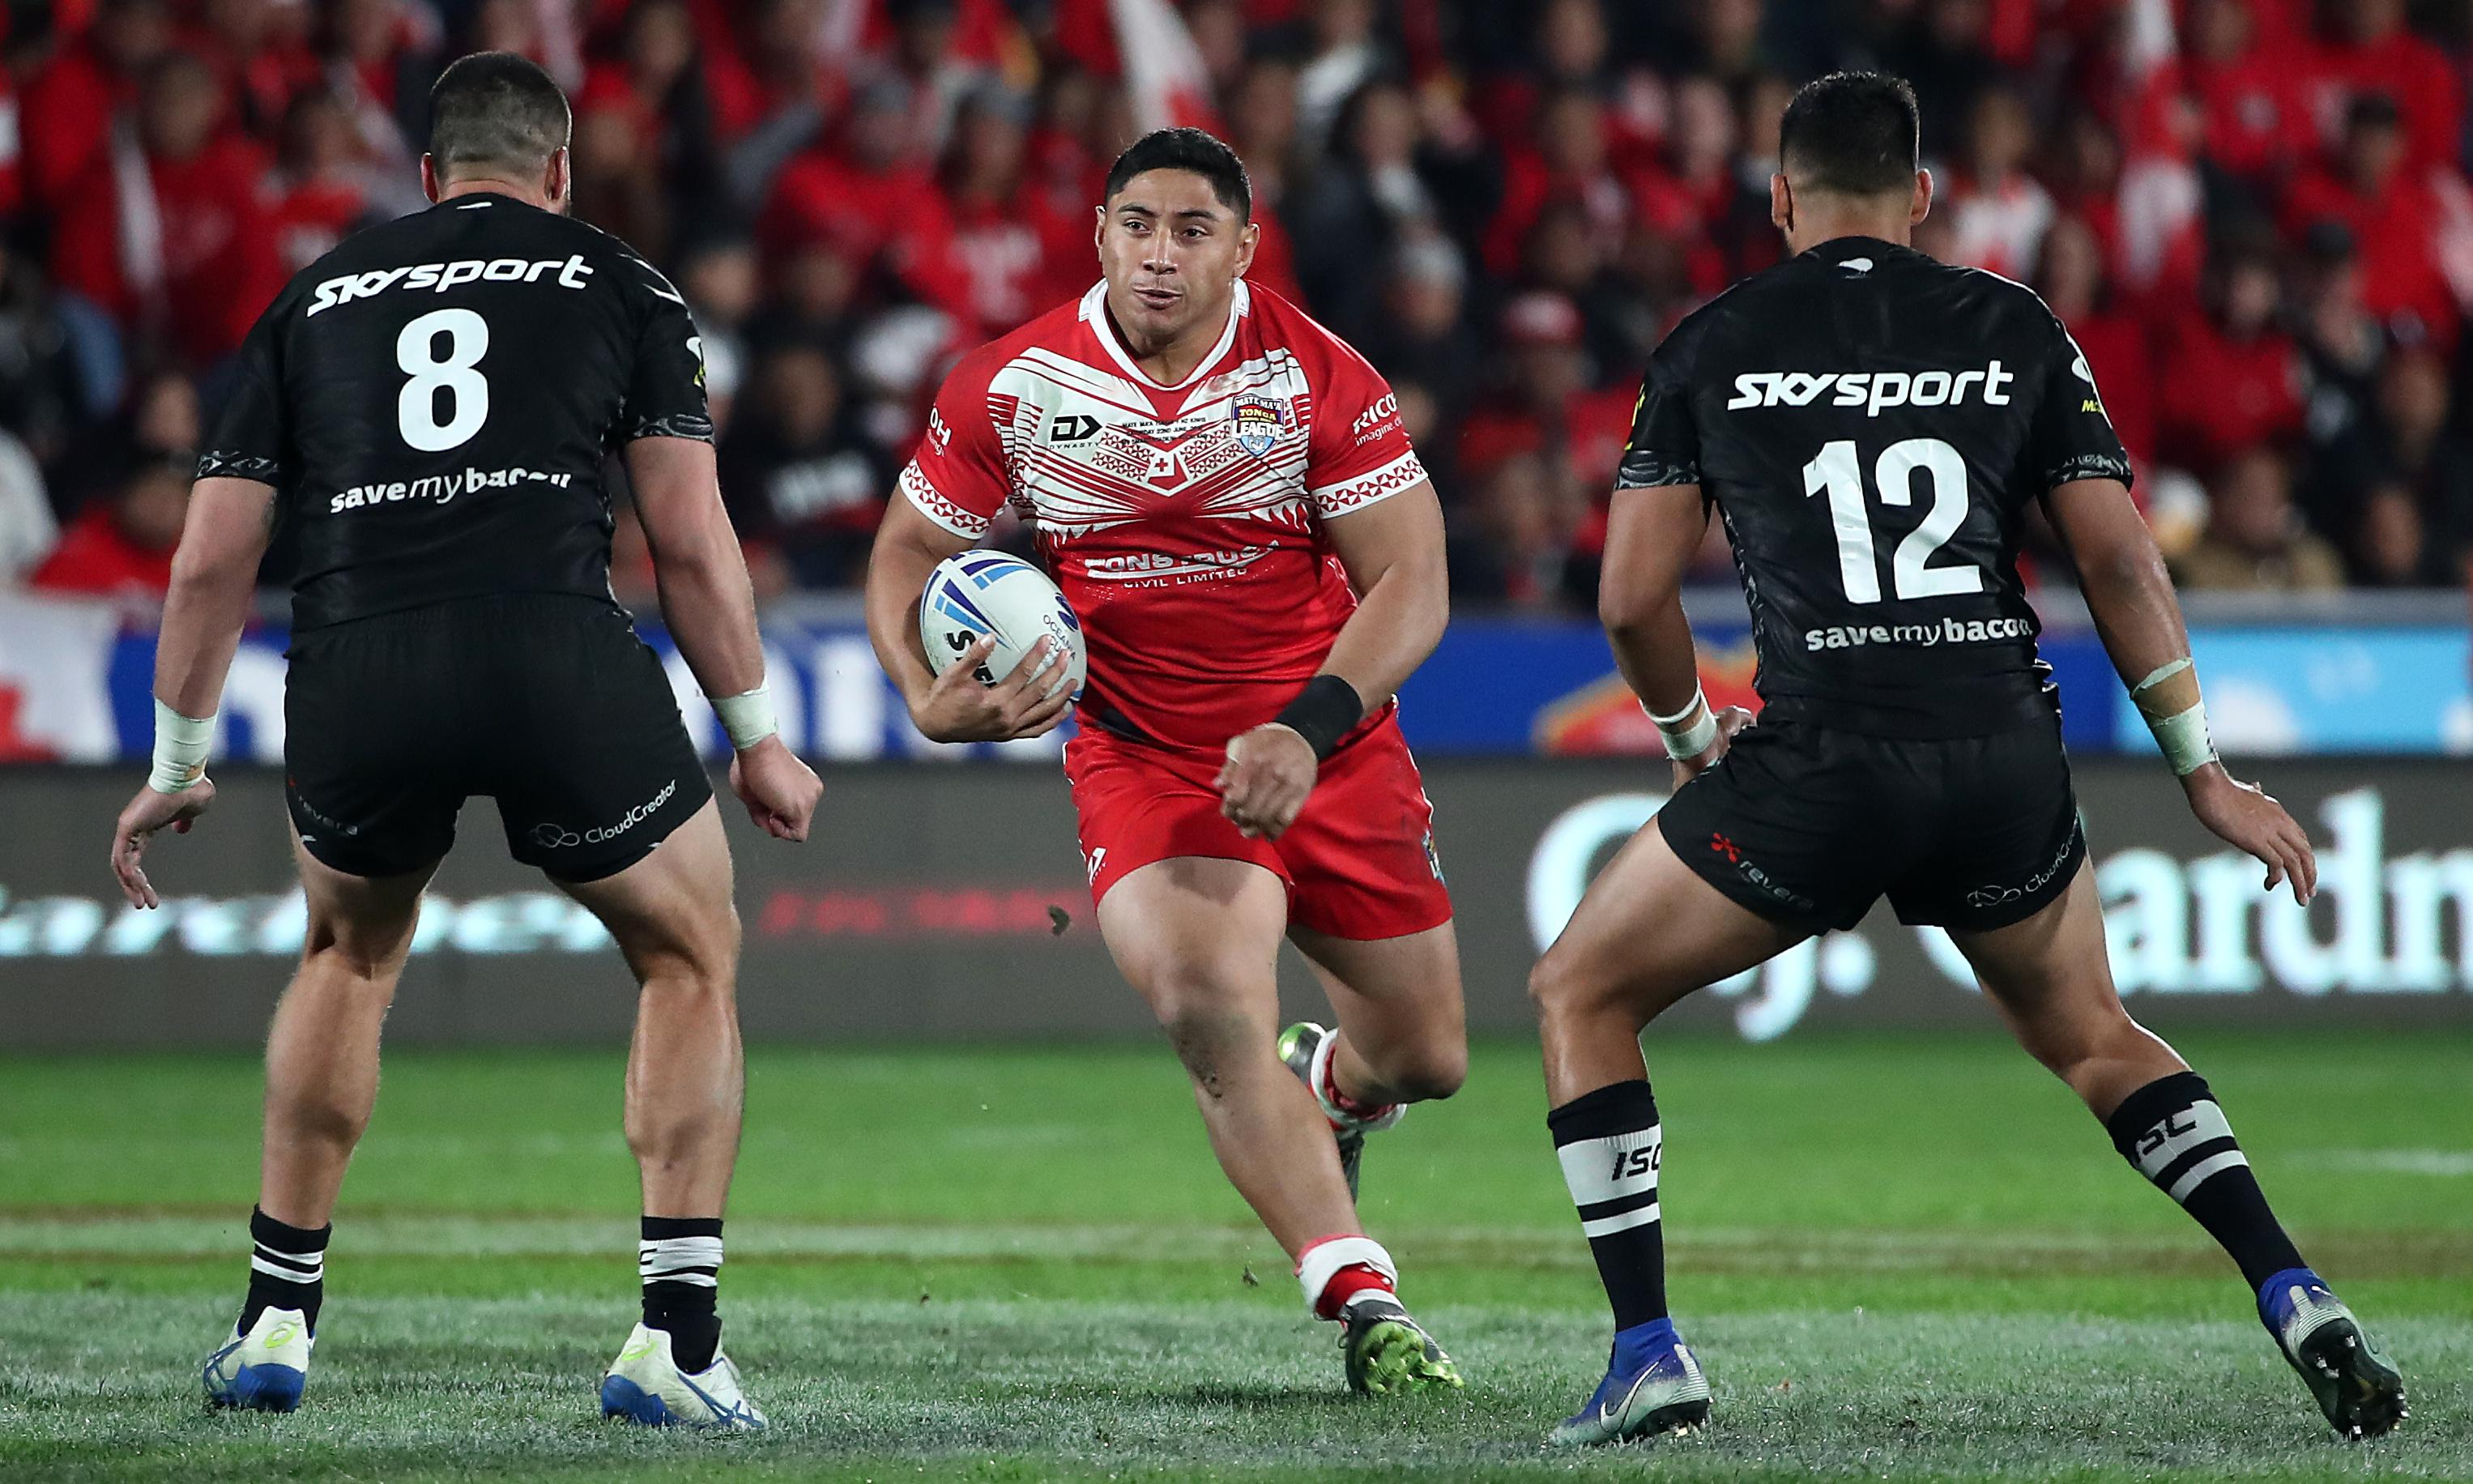 Super League should take NRL's lead and promote international matches